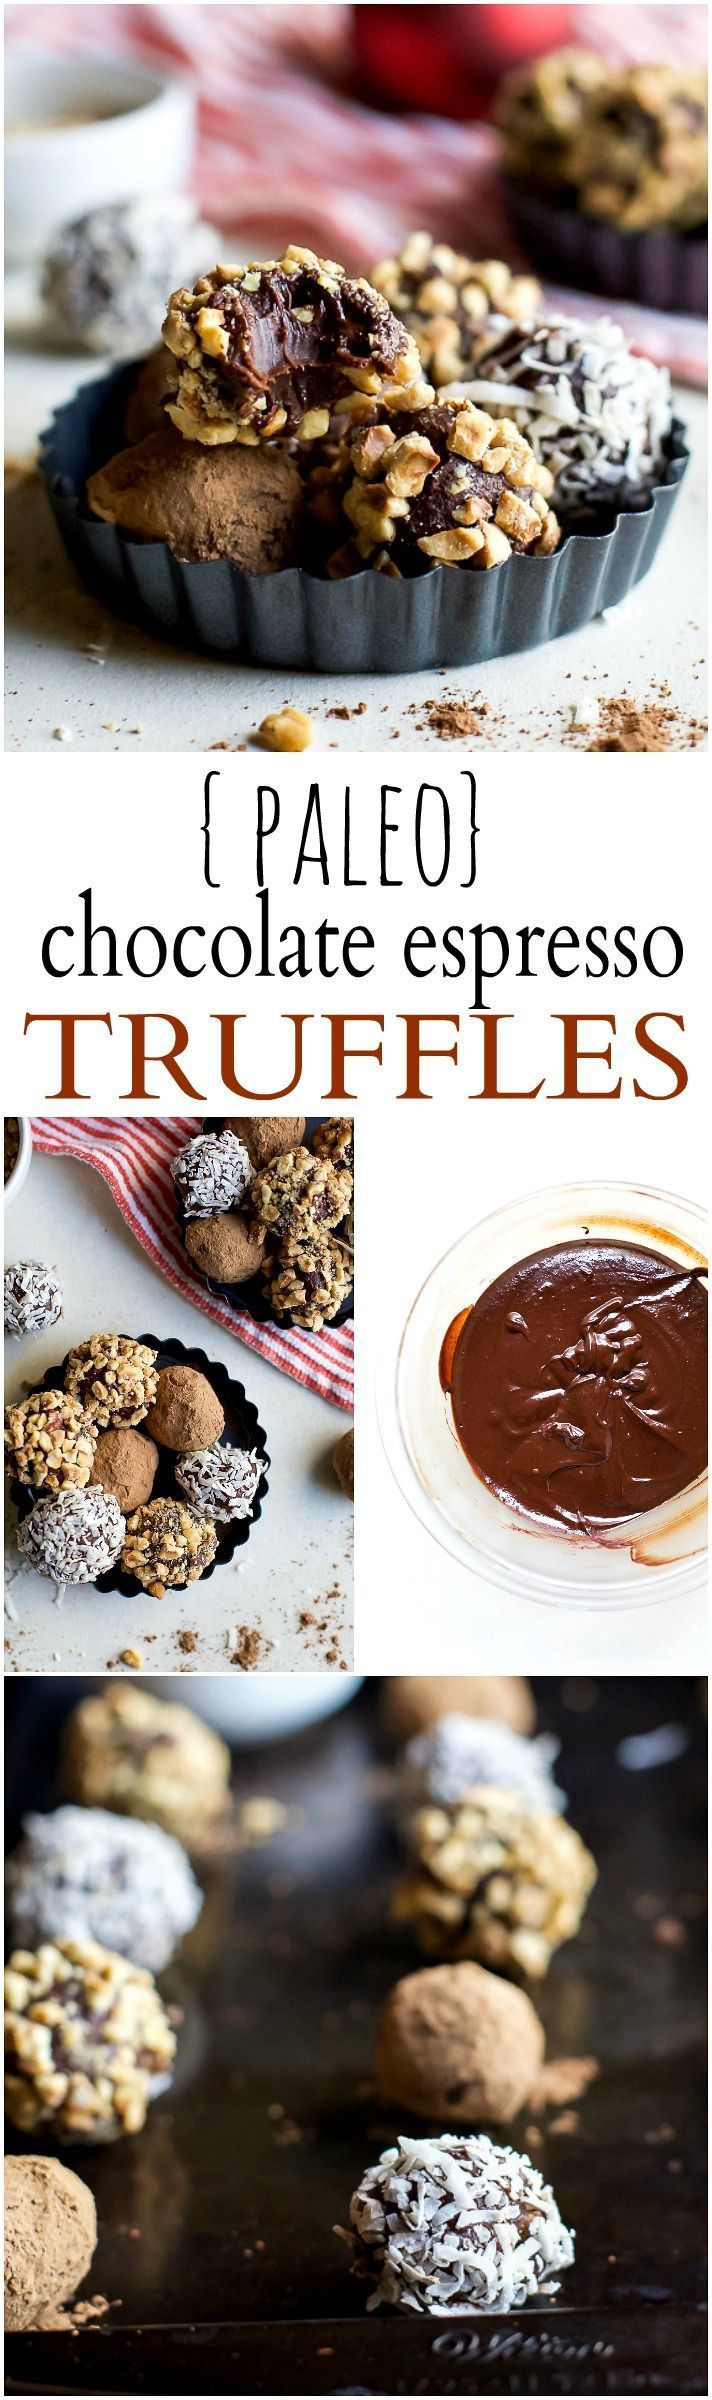 You're just 4 ingredients away from these PALEO CHOCOLATE ESPRESSO TRUFFLES. Creamy, silky, smooth chocolate - you want these on your cookie platter this holiday season! | joyfulhealthyeats... | Gluten Free Recipes | Cookie Recipes